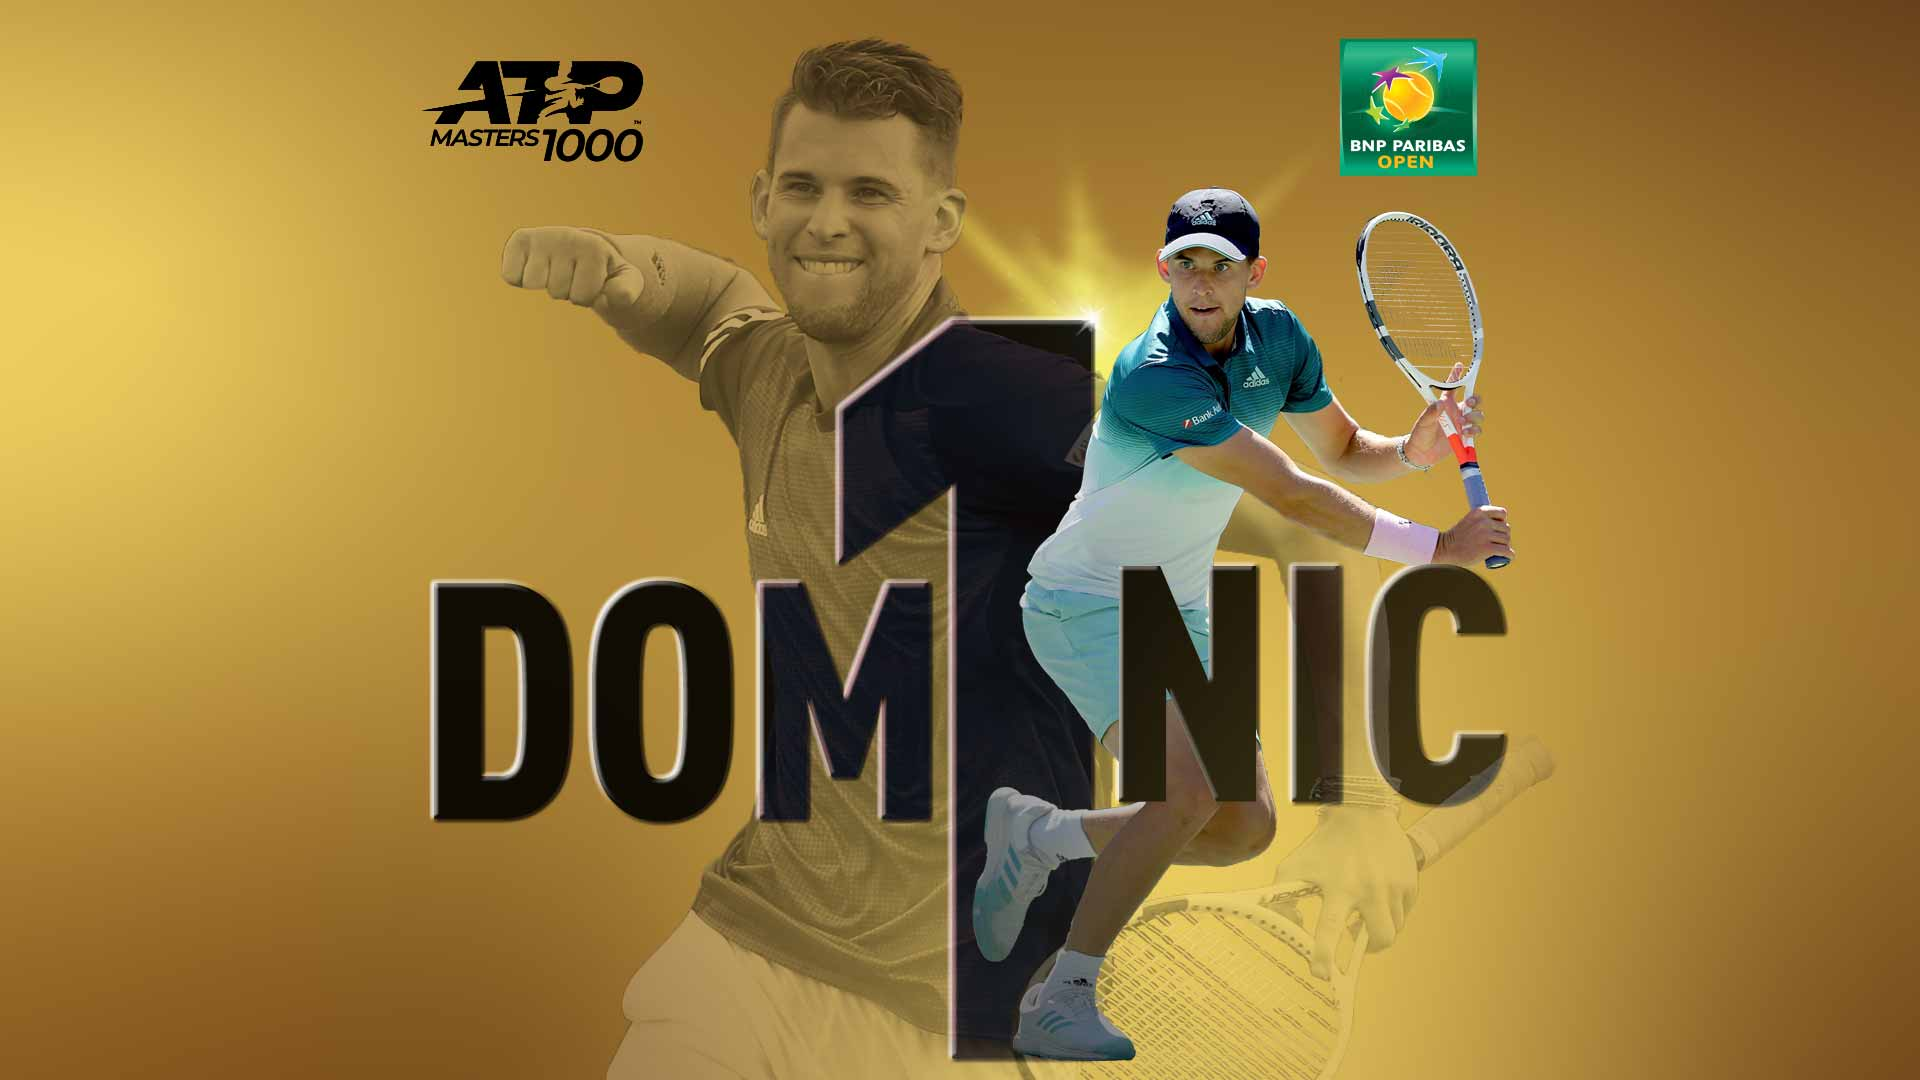 <a href='https://www.atptour.com/en/players/dominic-thiem/tb69/overview'>Dominic Thiem</a> wins his first ATP Masters 1000 title